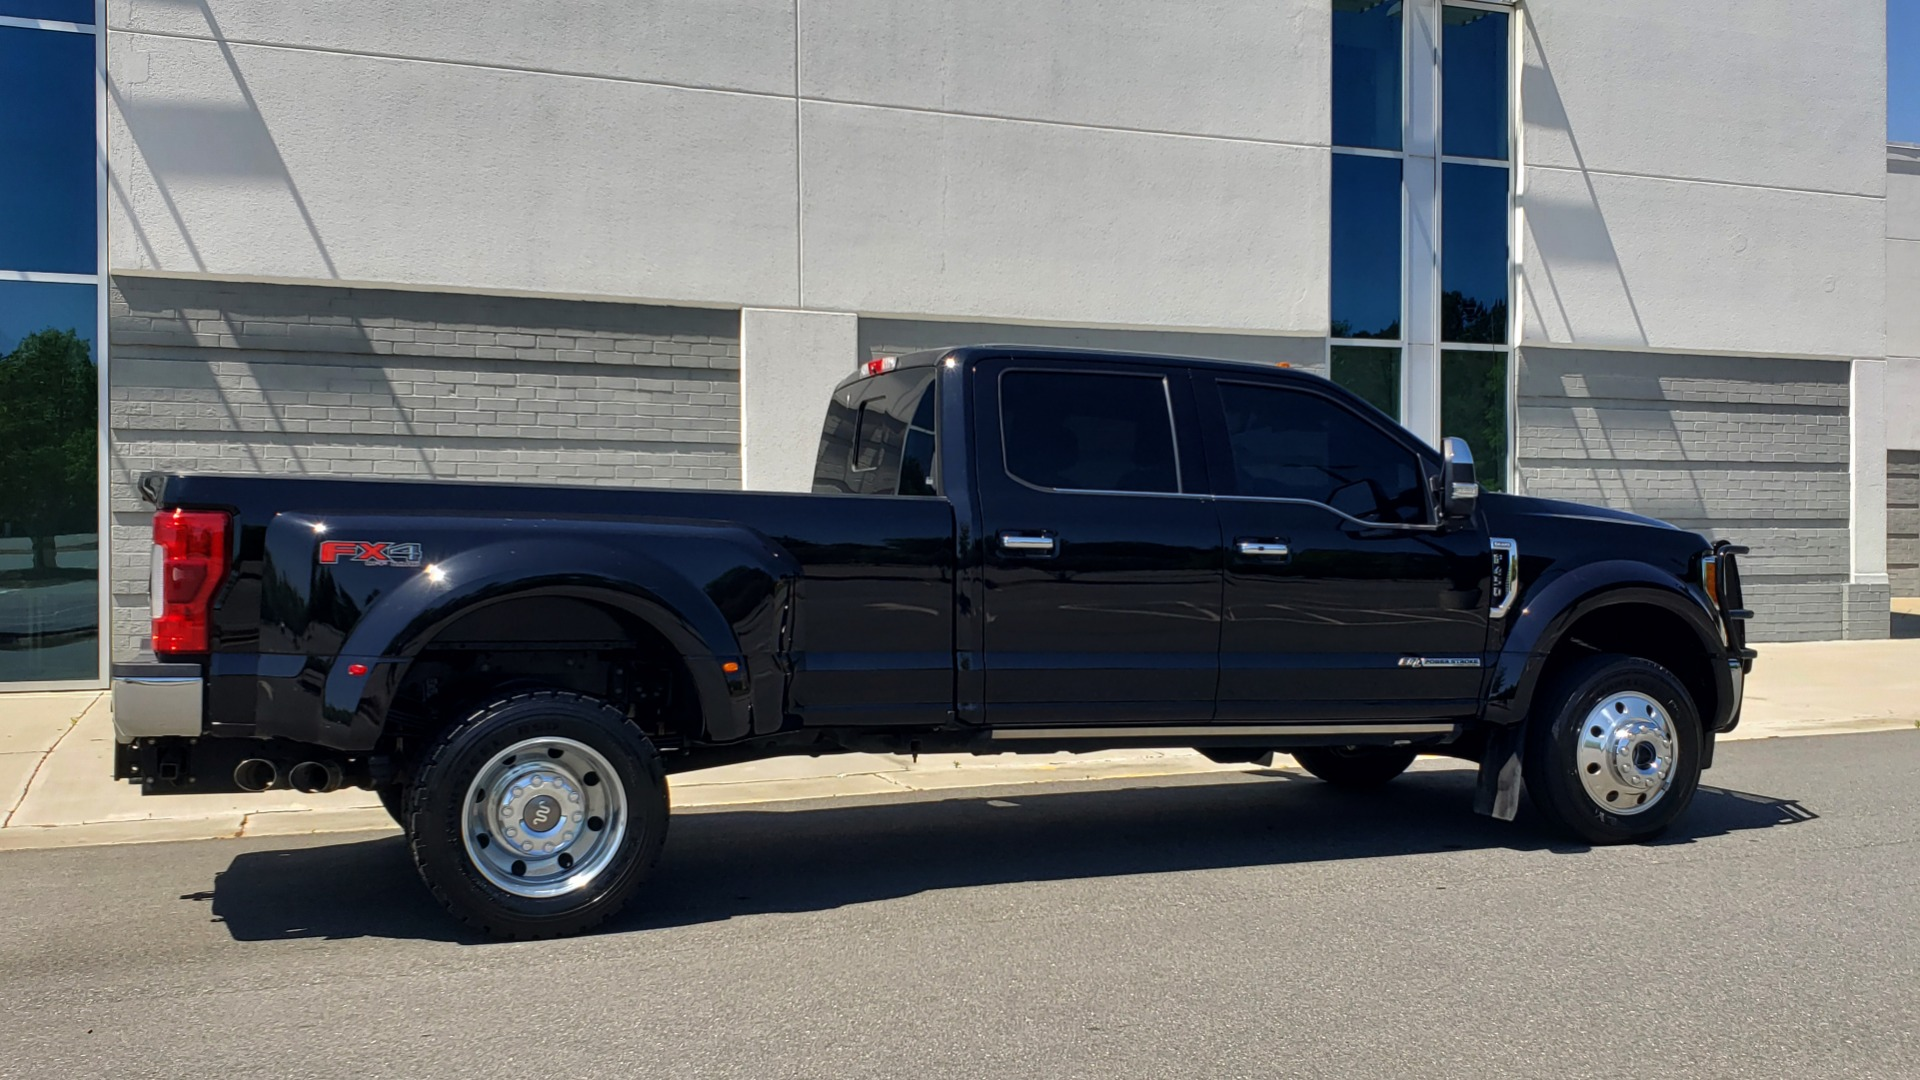 Used 2017 Ford SUPER DUTY F-450 DRW KING RANCH 4X4 / 176IN WB / 6.7L POWER-STROKE / LOADED for sale Sold at Formula Imports in Charlotte NC 28227 11